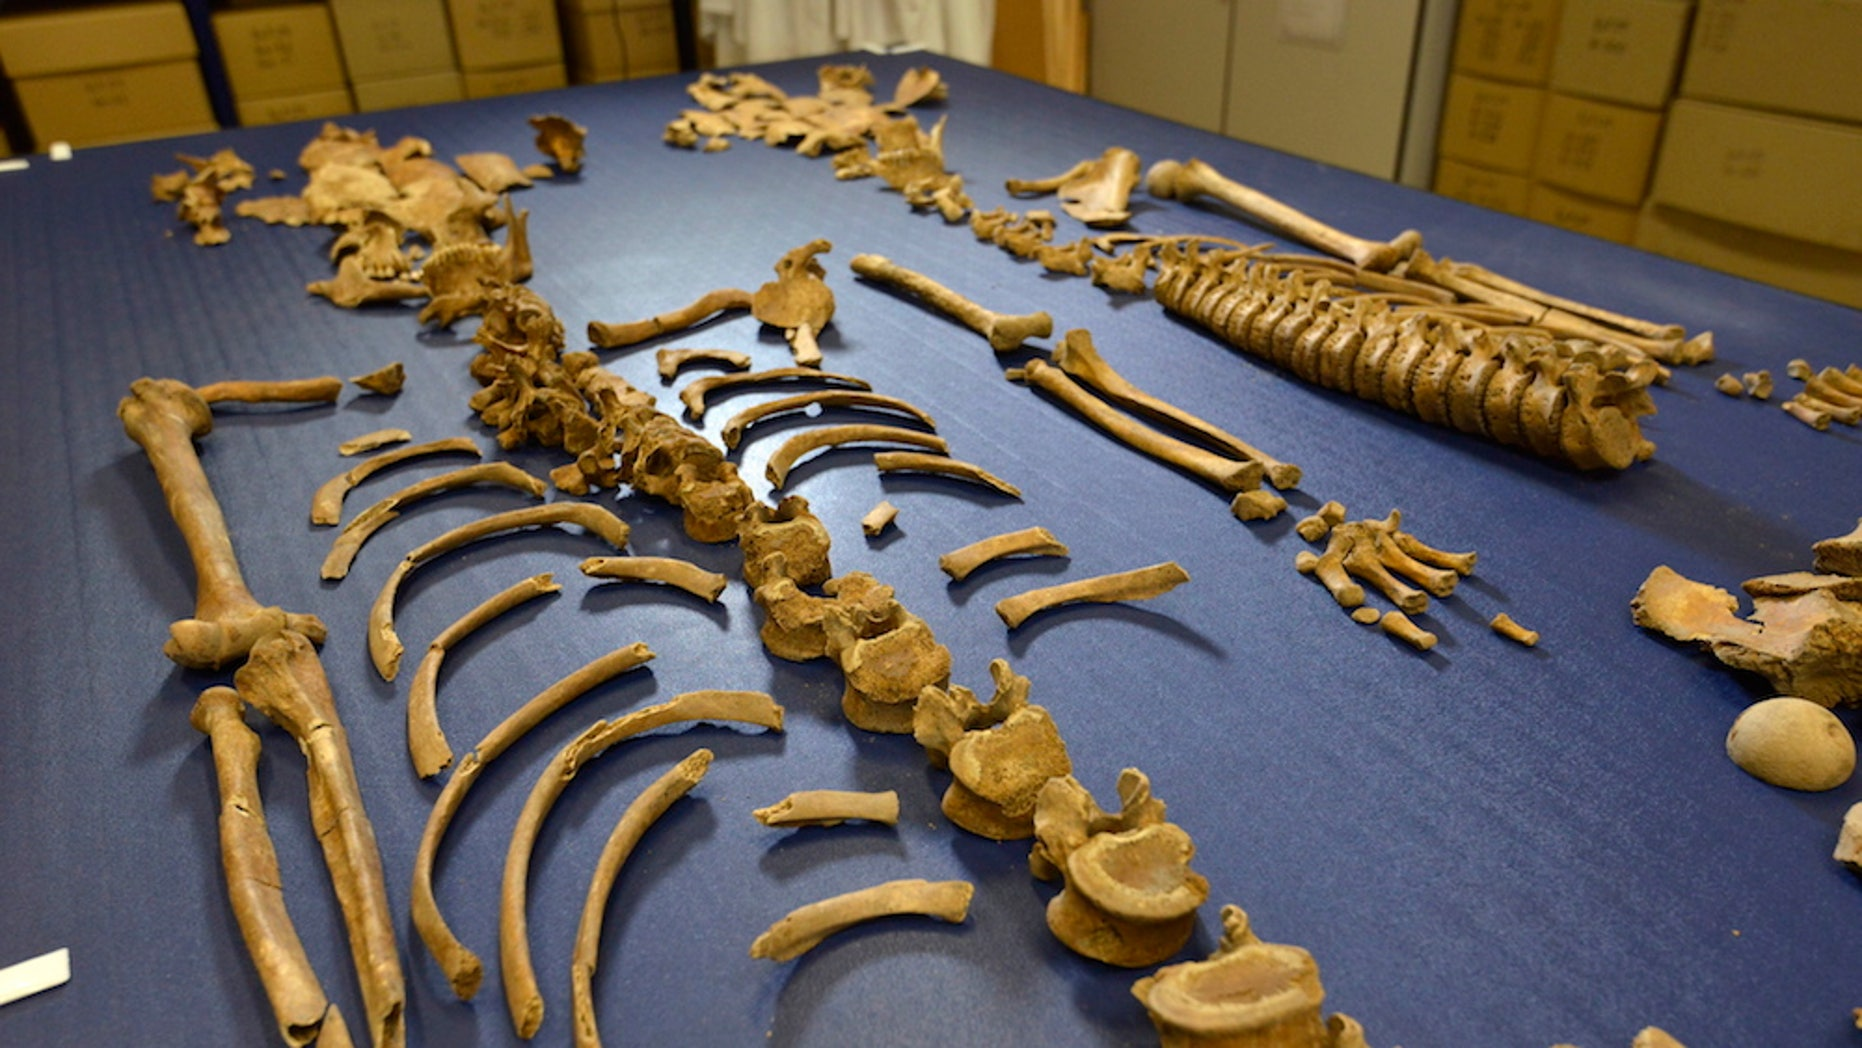 Scientific tests revealed that human remains found in mass graves are those of 17th-century Scottish soldiers.